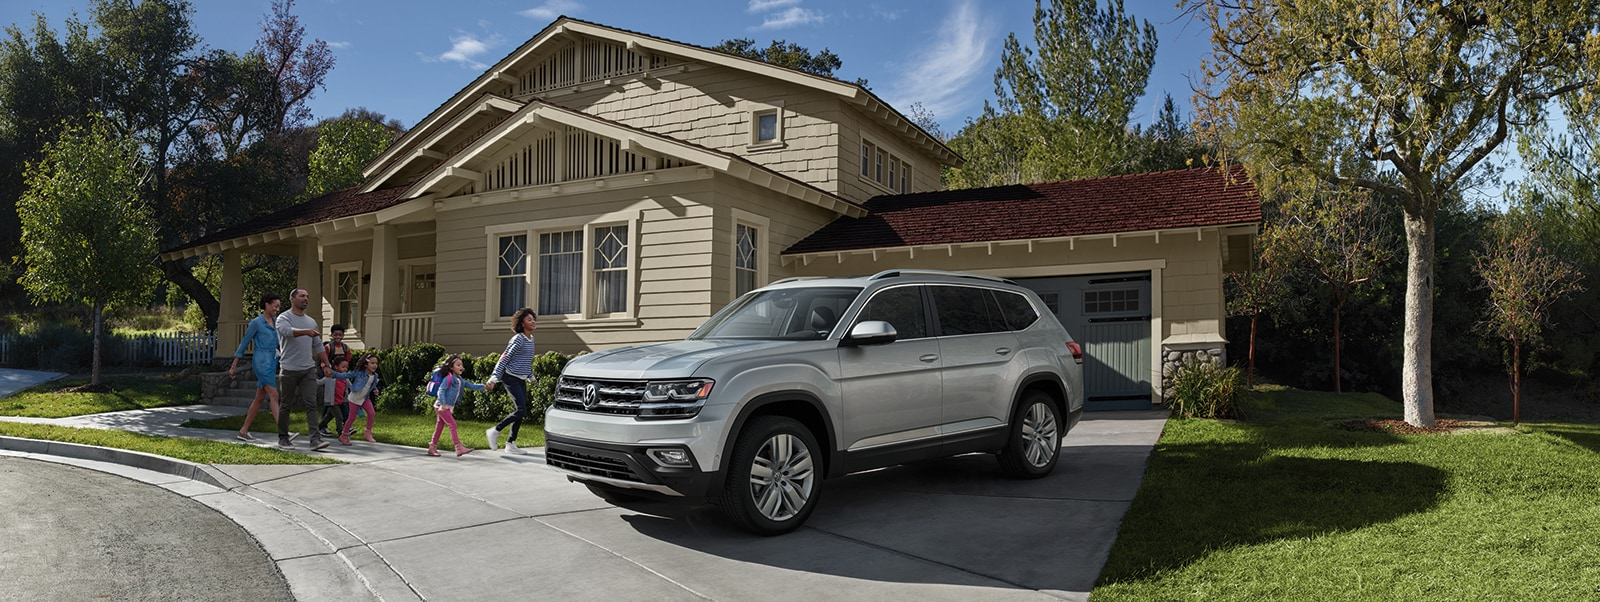 Volkswagen Alhambra is throwing a big party to introduce the new Volkswagen Atlas - and you're invited!